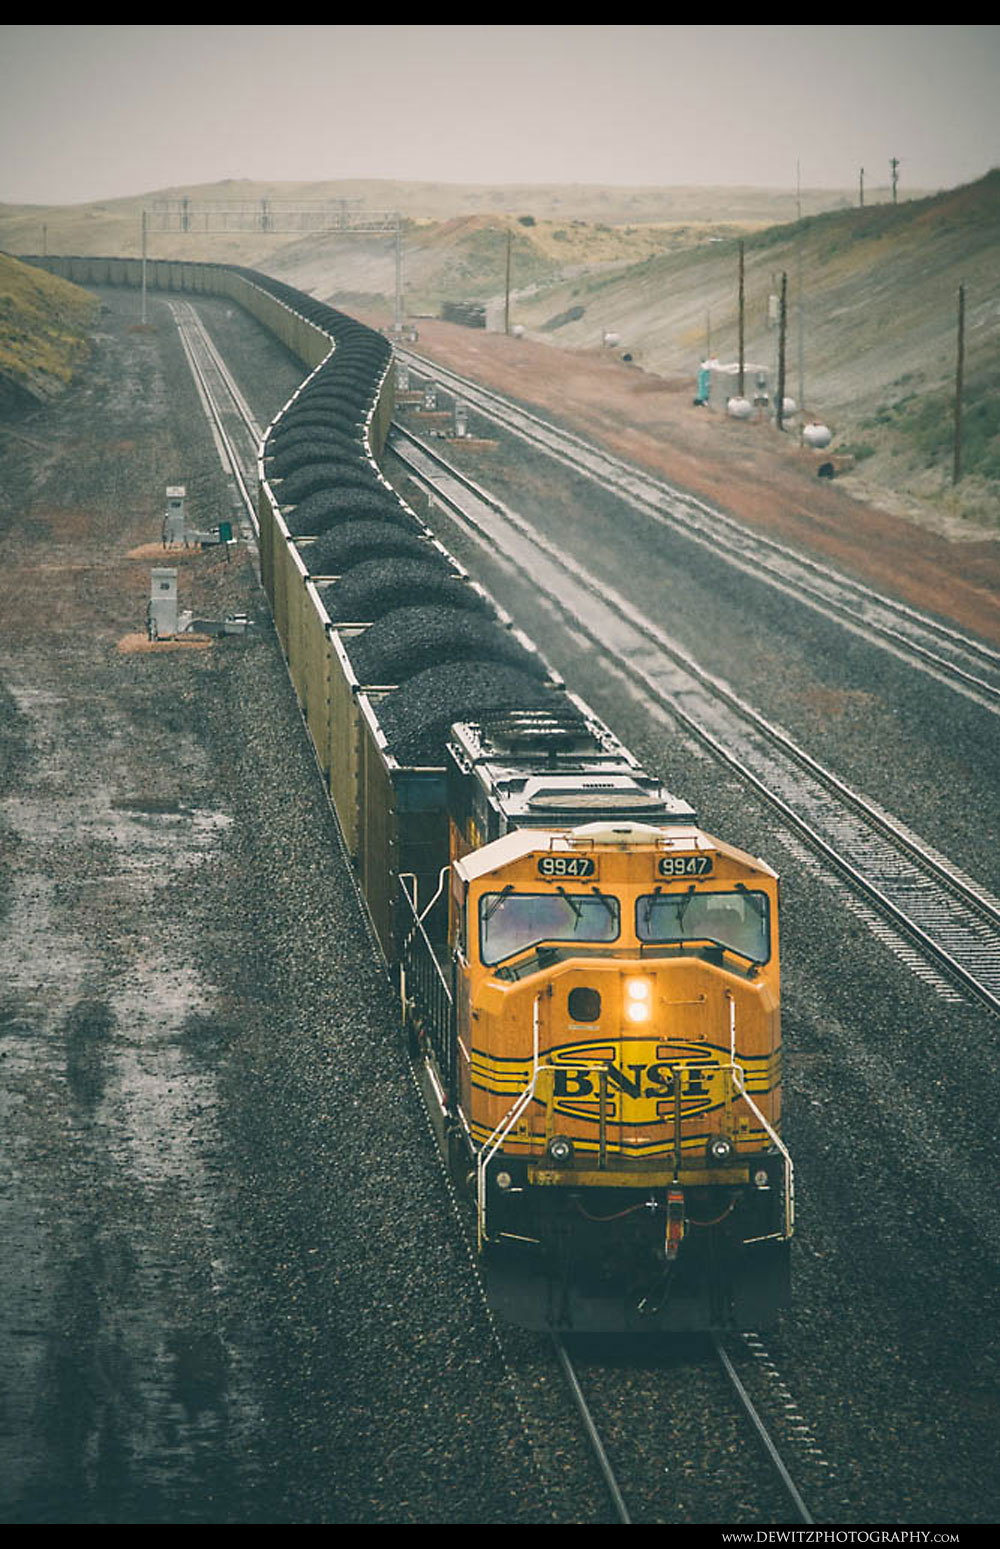 1Loaded Coal Train Climbs the Hill